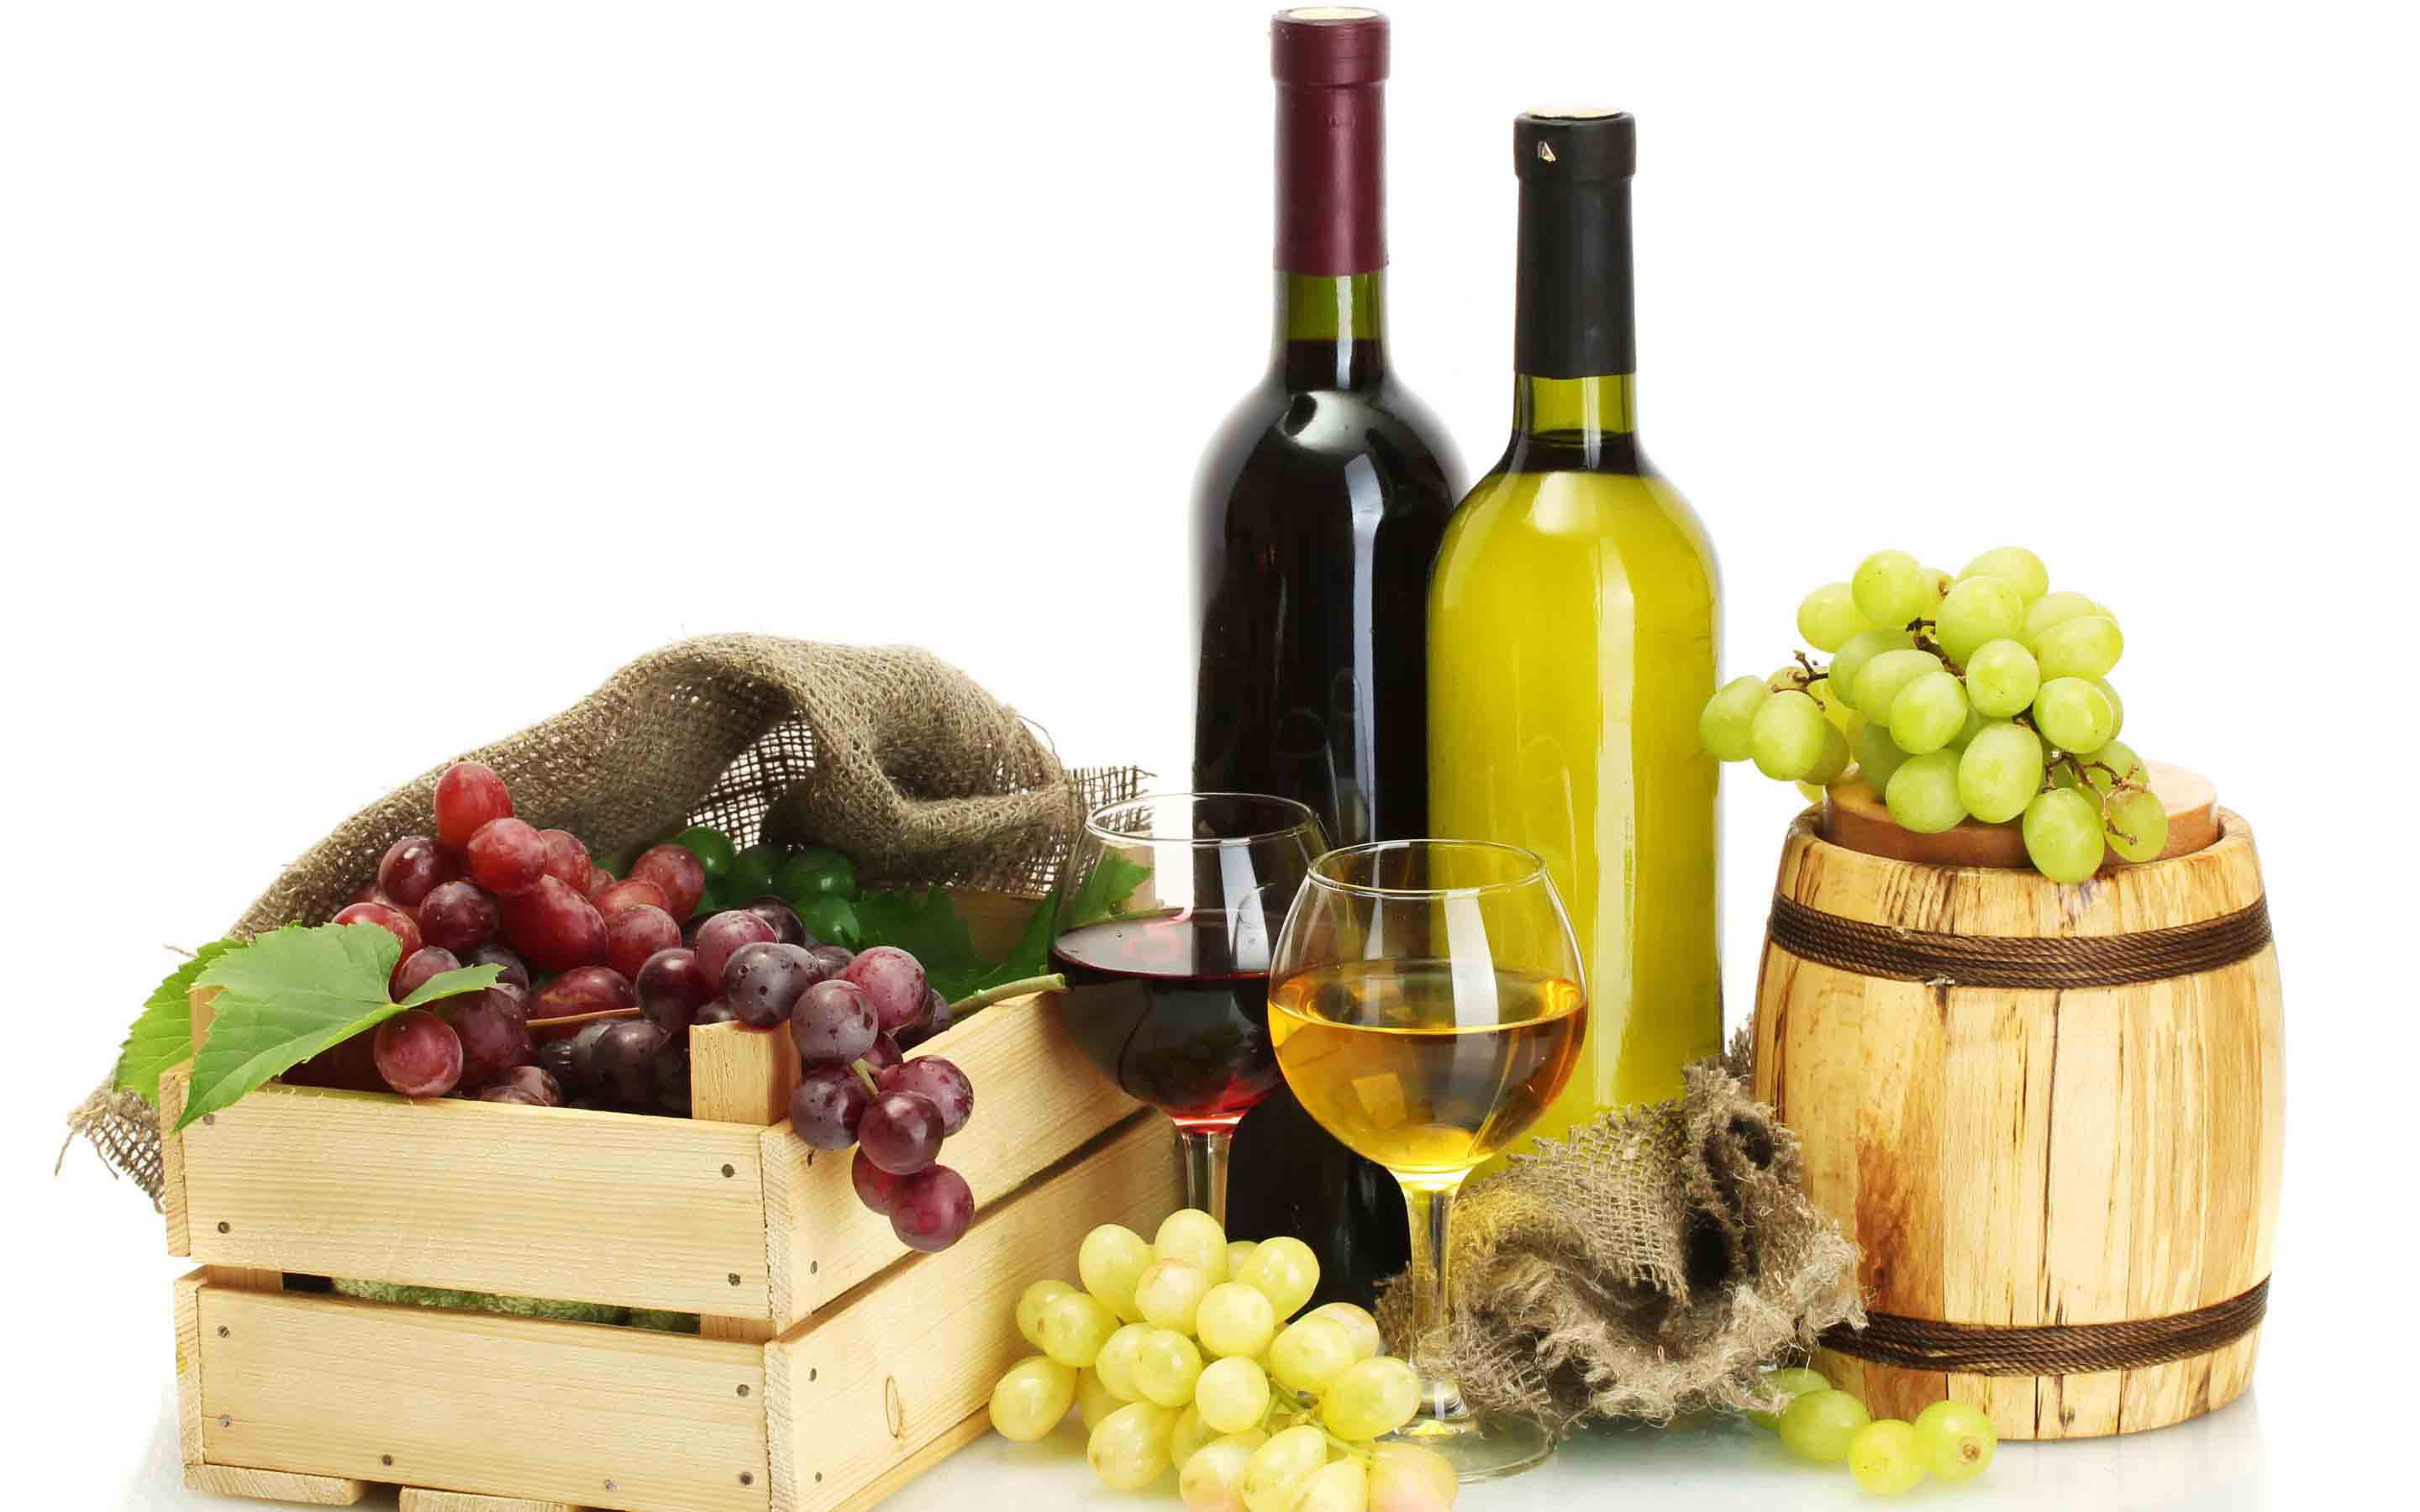 White wine can be obtained from red grapes